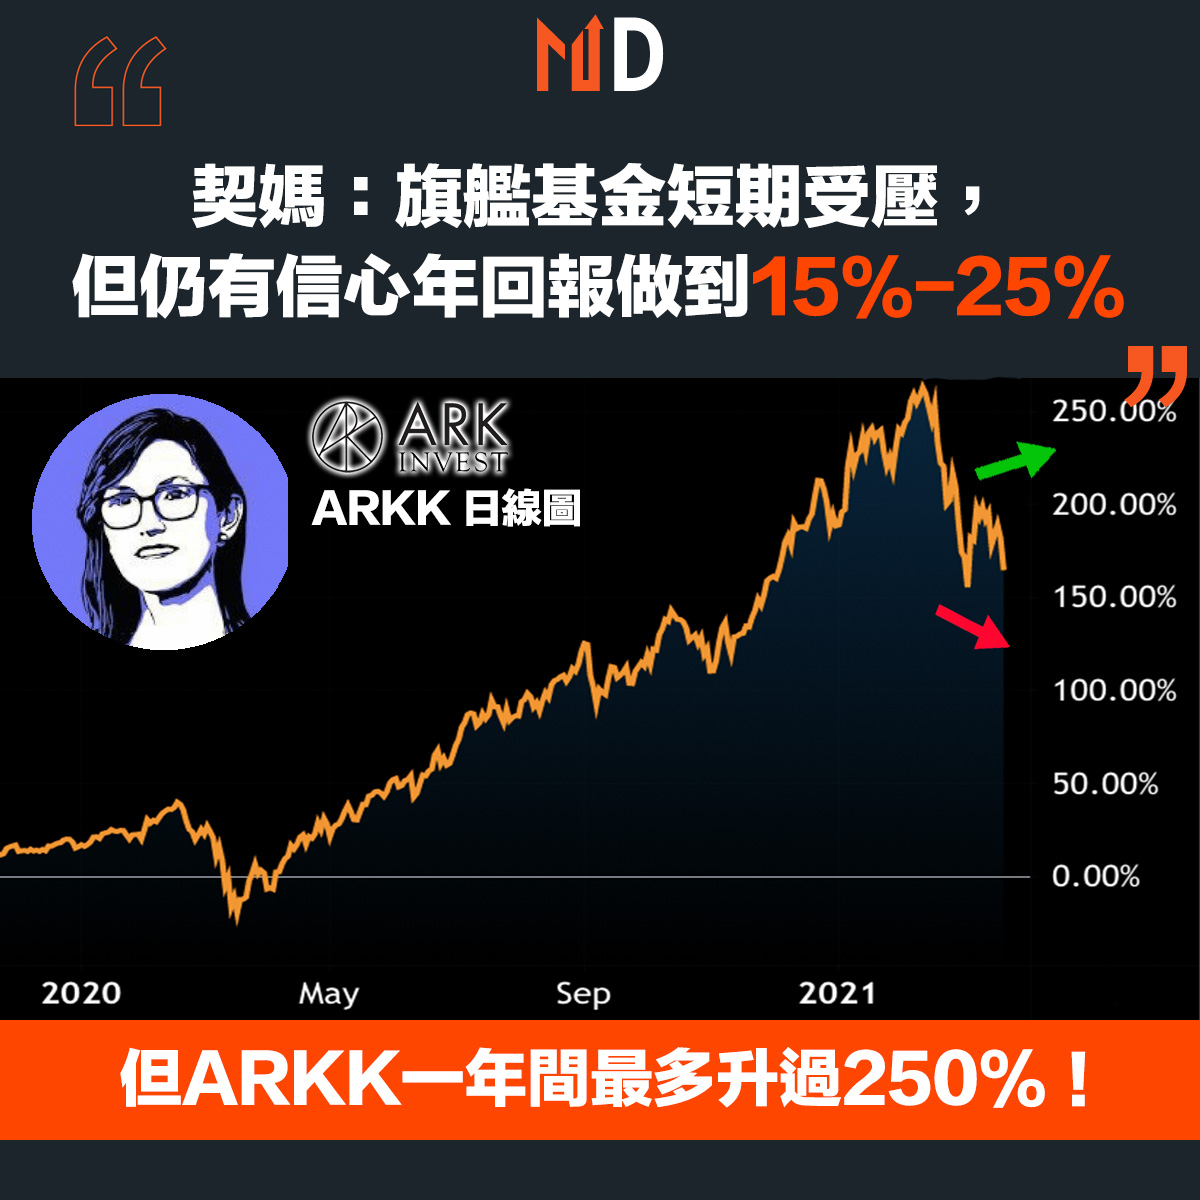 Cathie wood and ARKK stock chart (source from Tradingview)